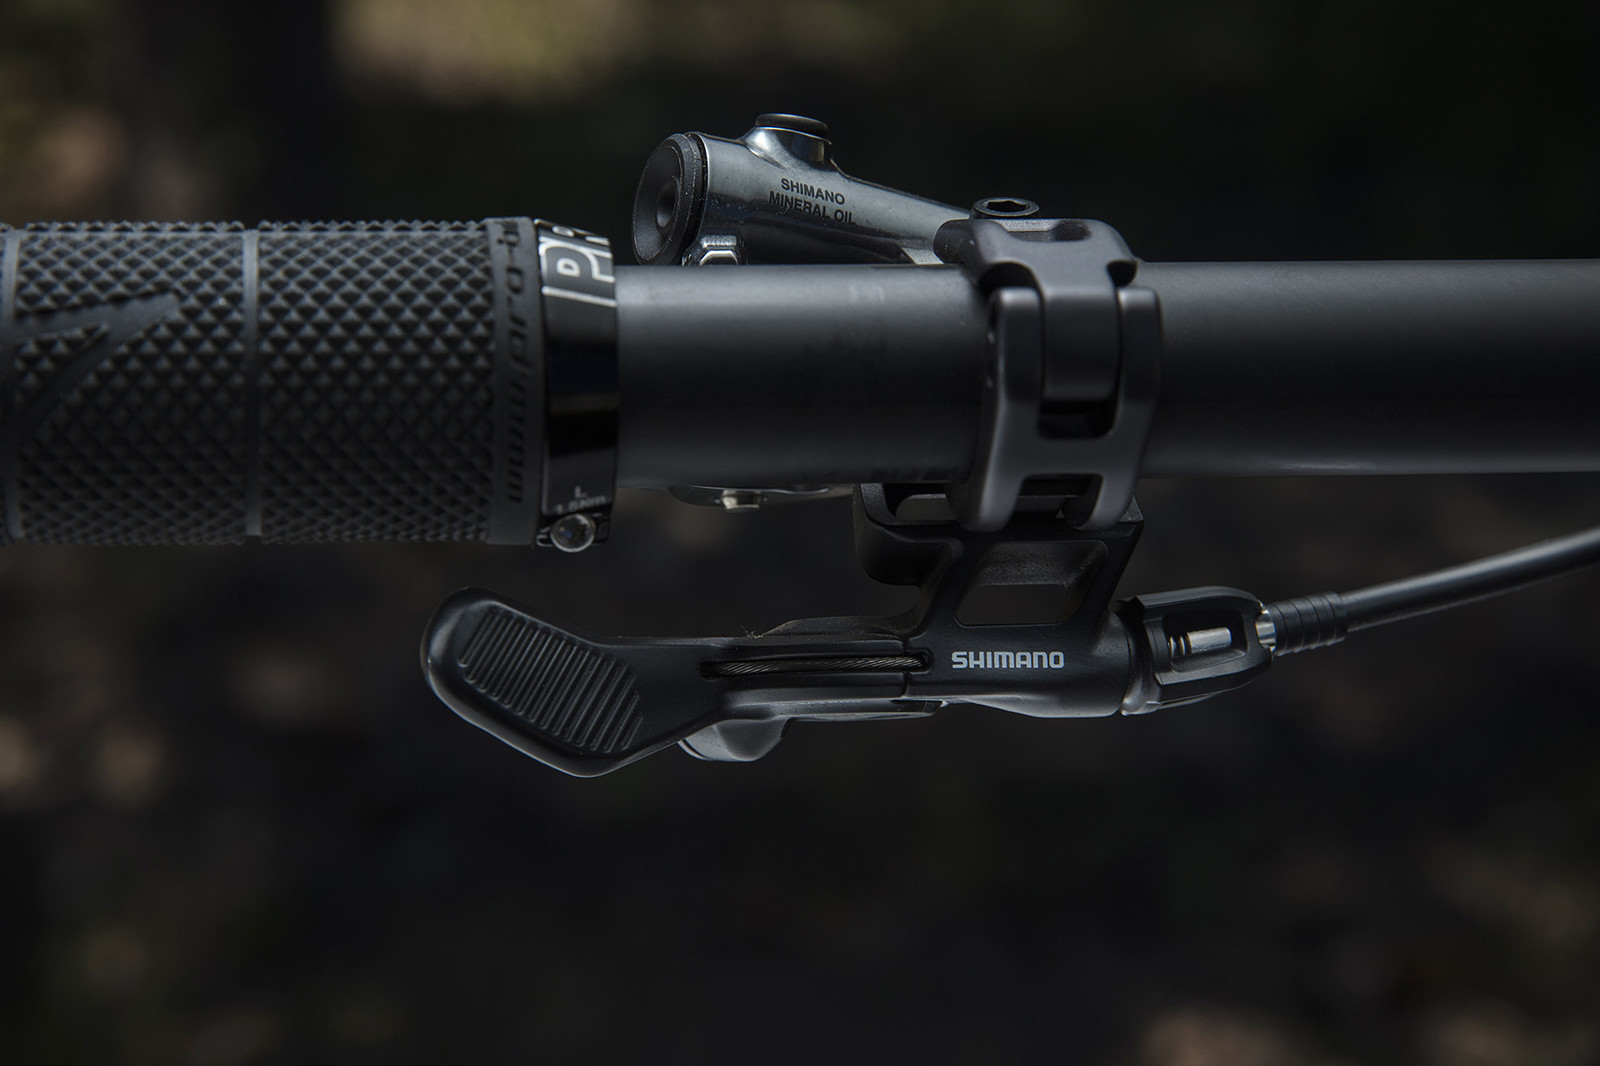 90f0fab37b6 The lever mounts right where you'd find the front shifter so it's  positioned to actuate effortlessly and adjust easily without any extra bar  clamps.